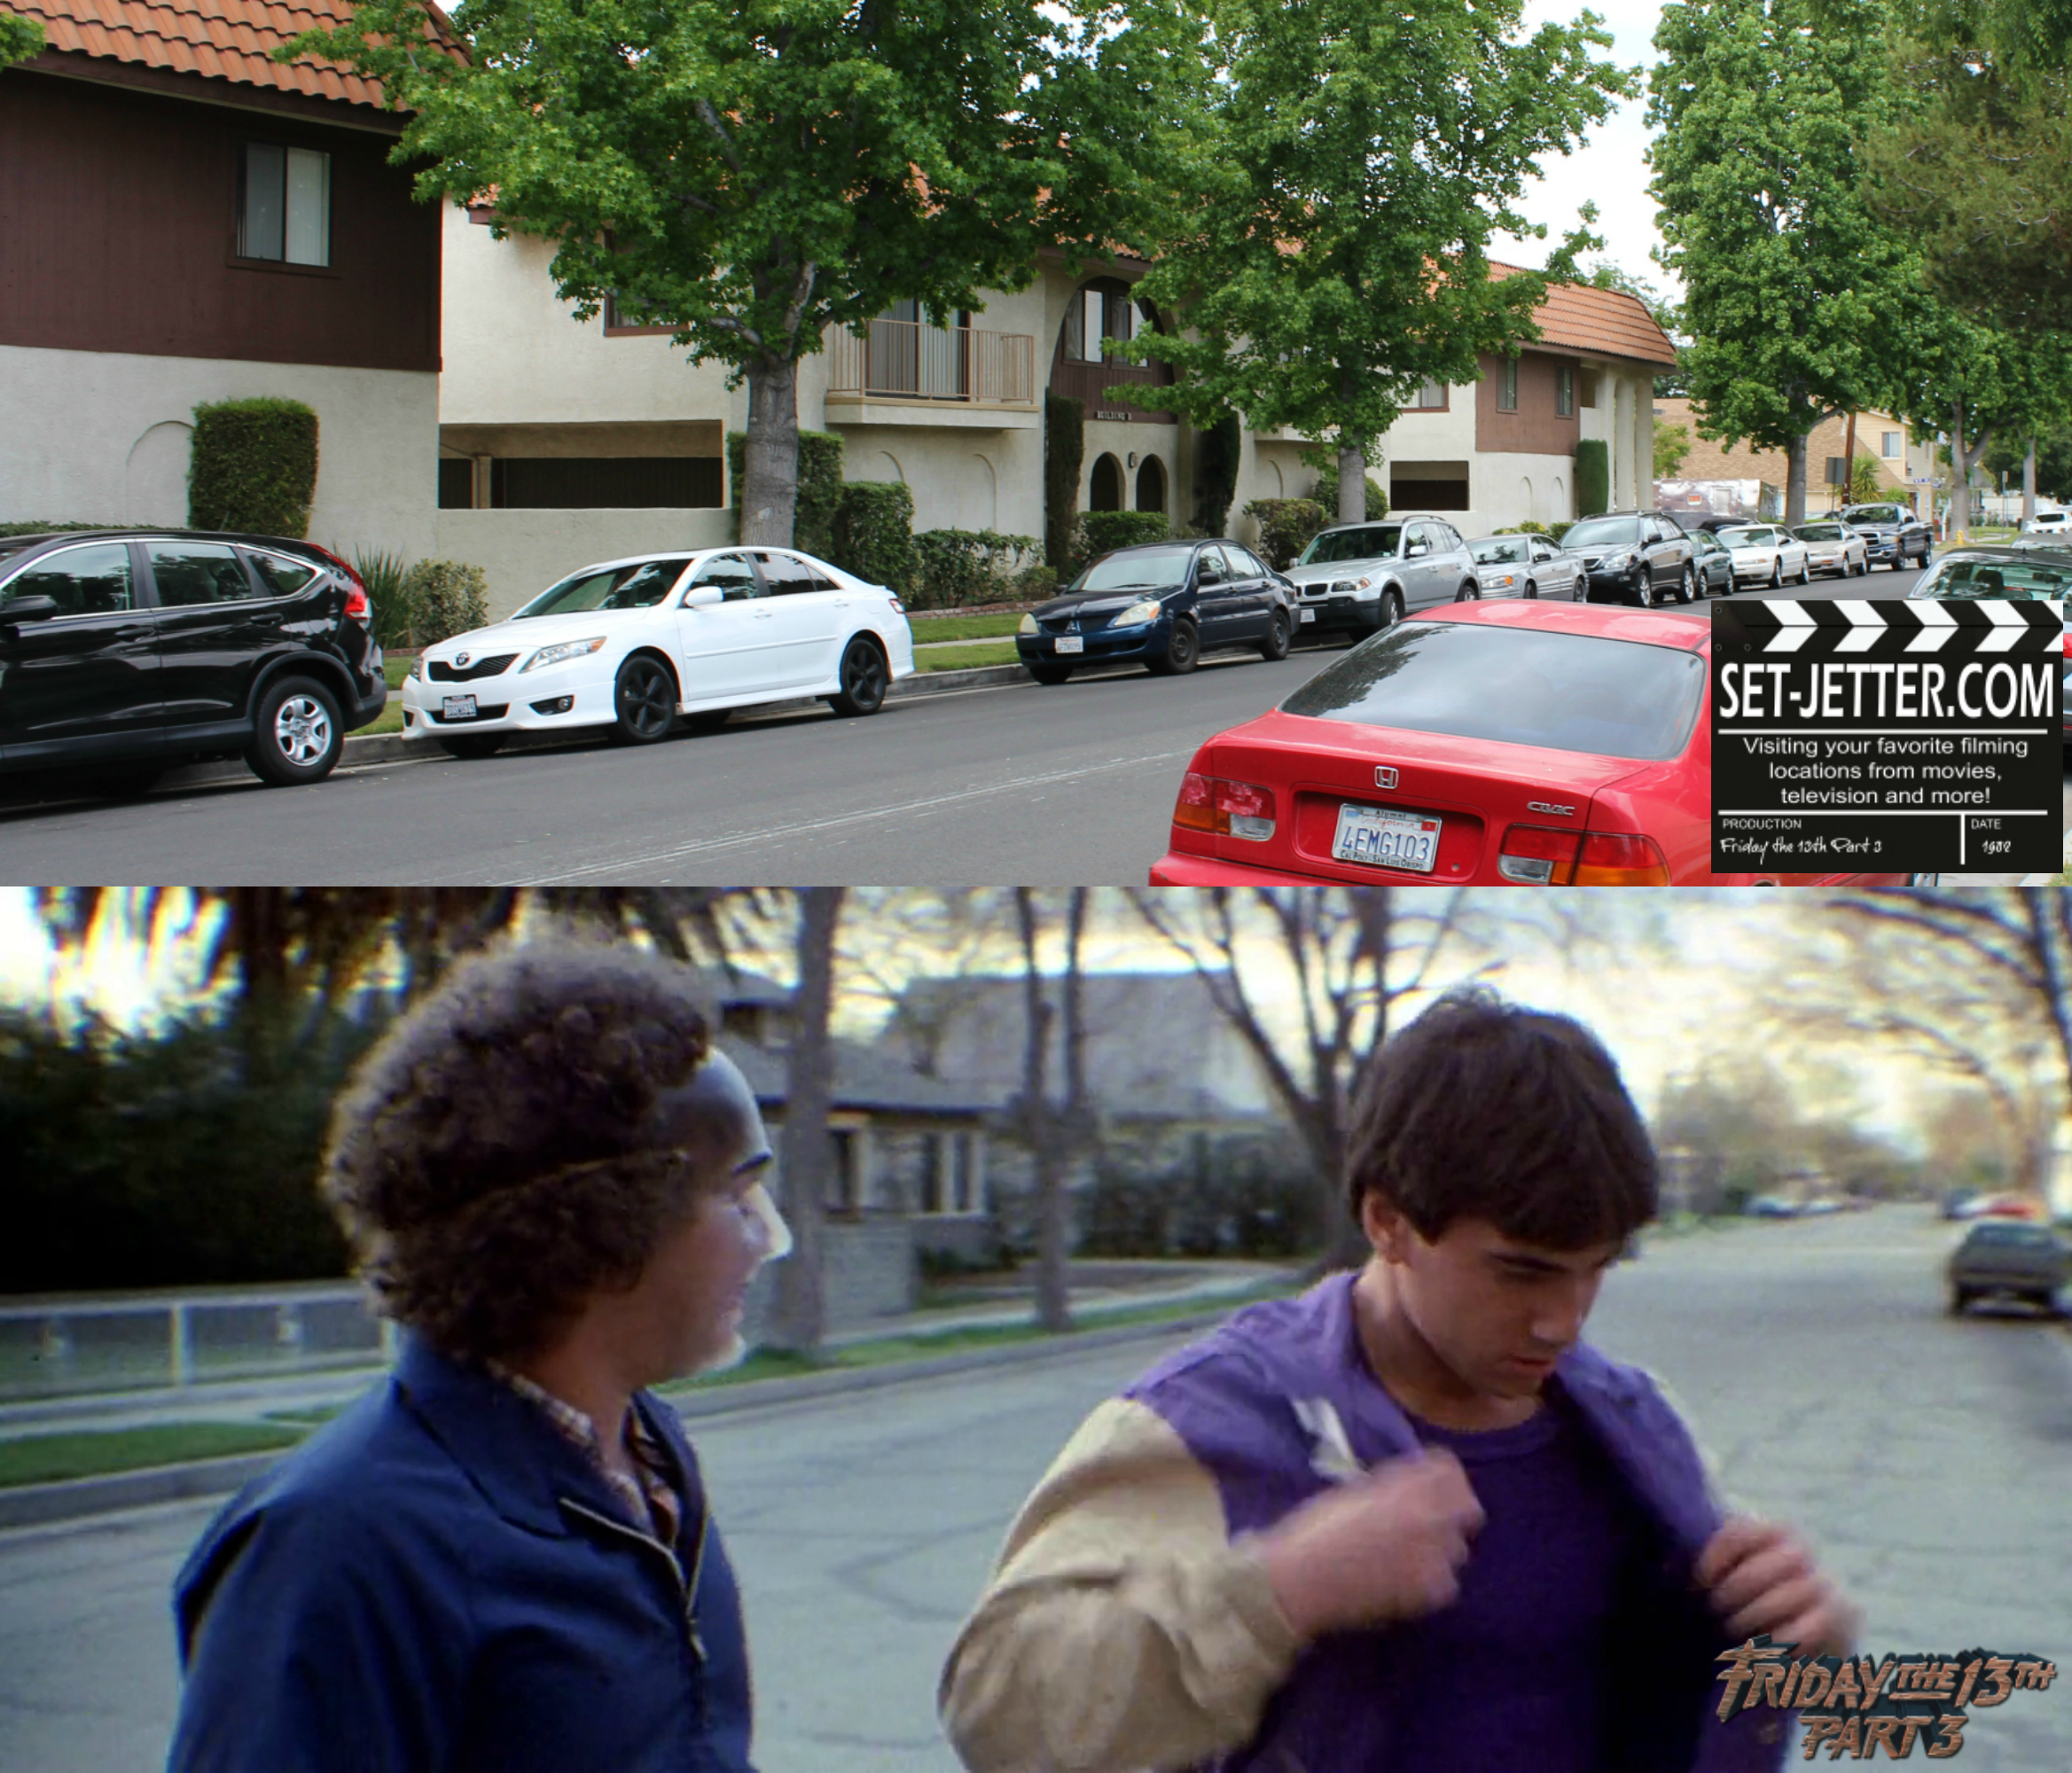 Friday the 13th Part 3 comparison 21.jpg